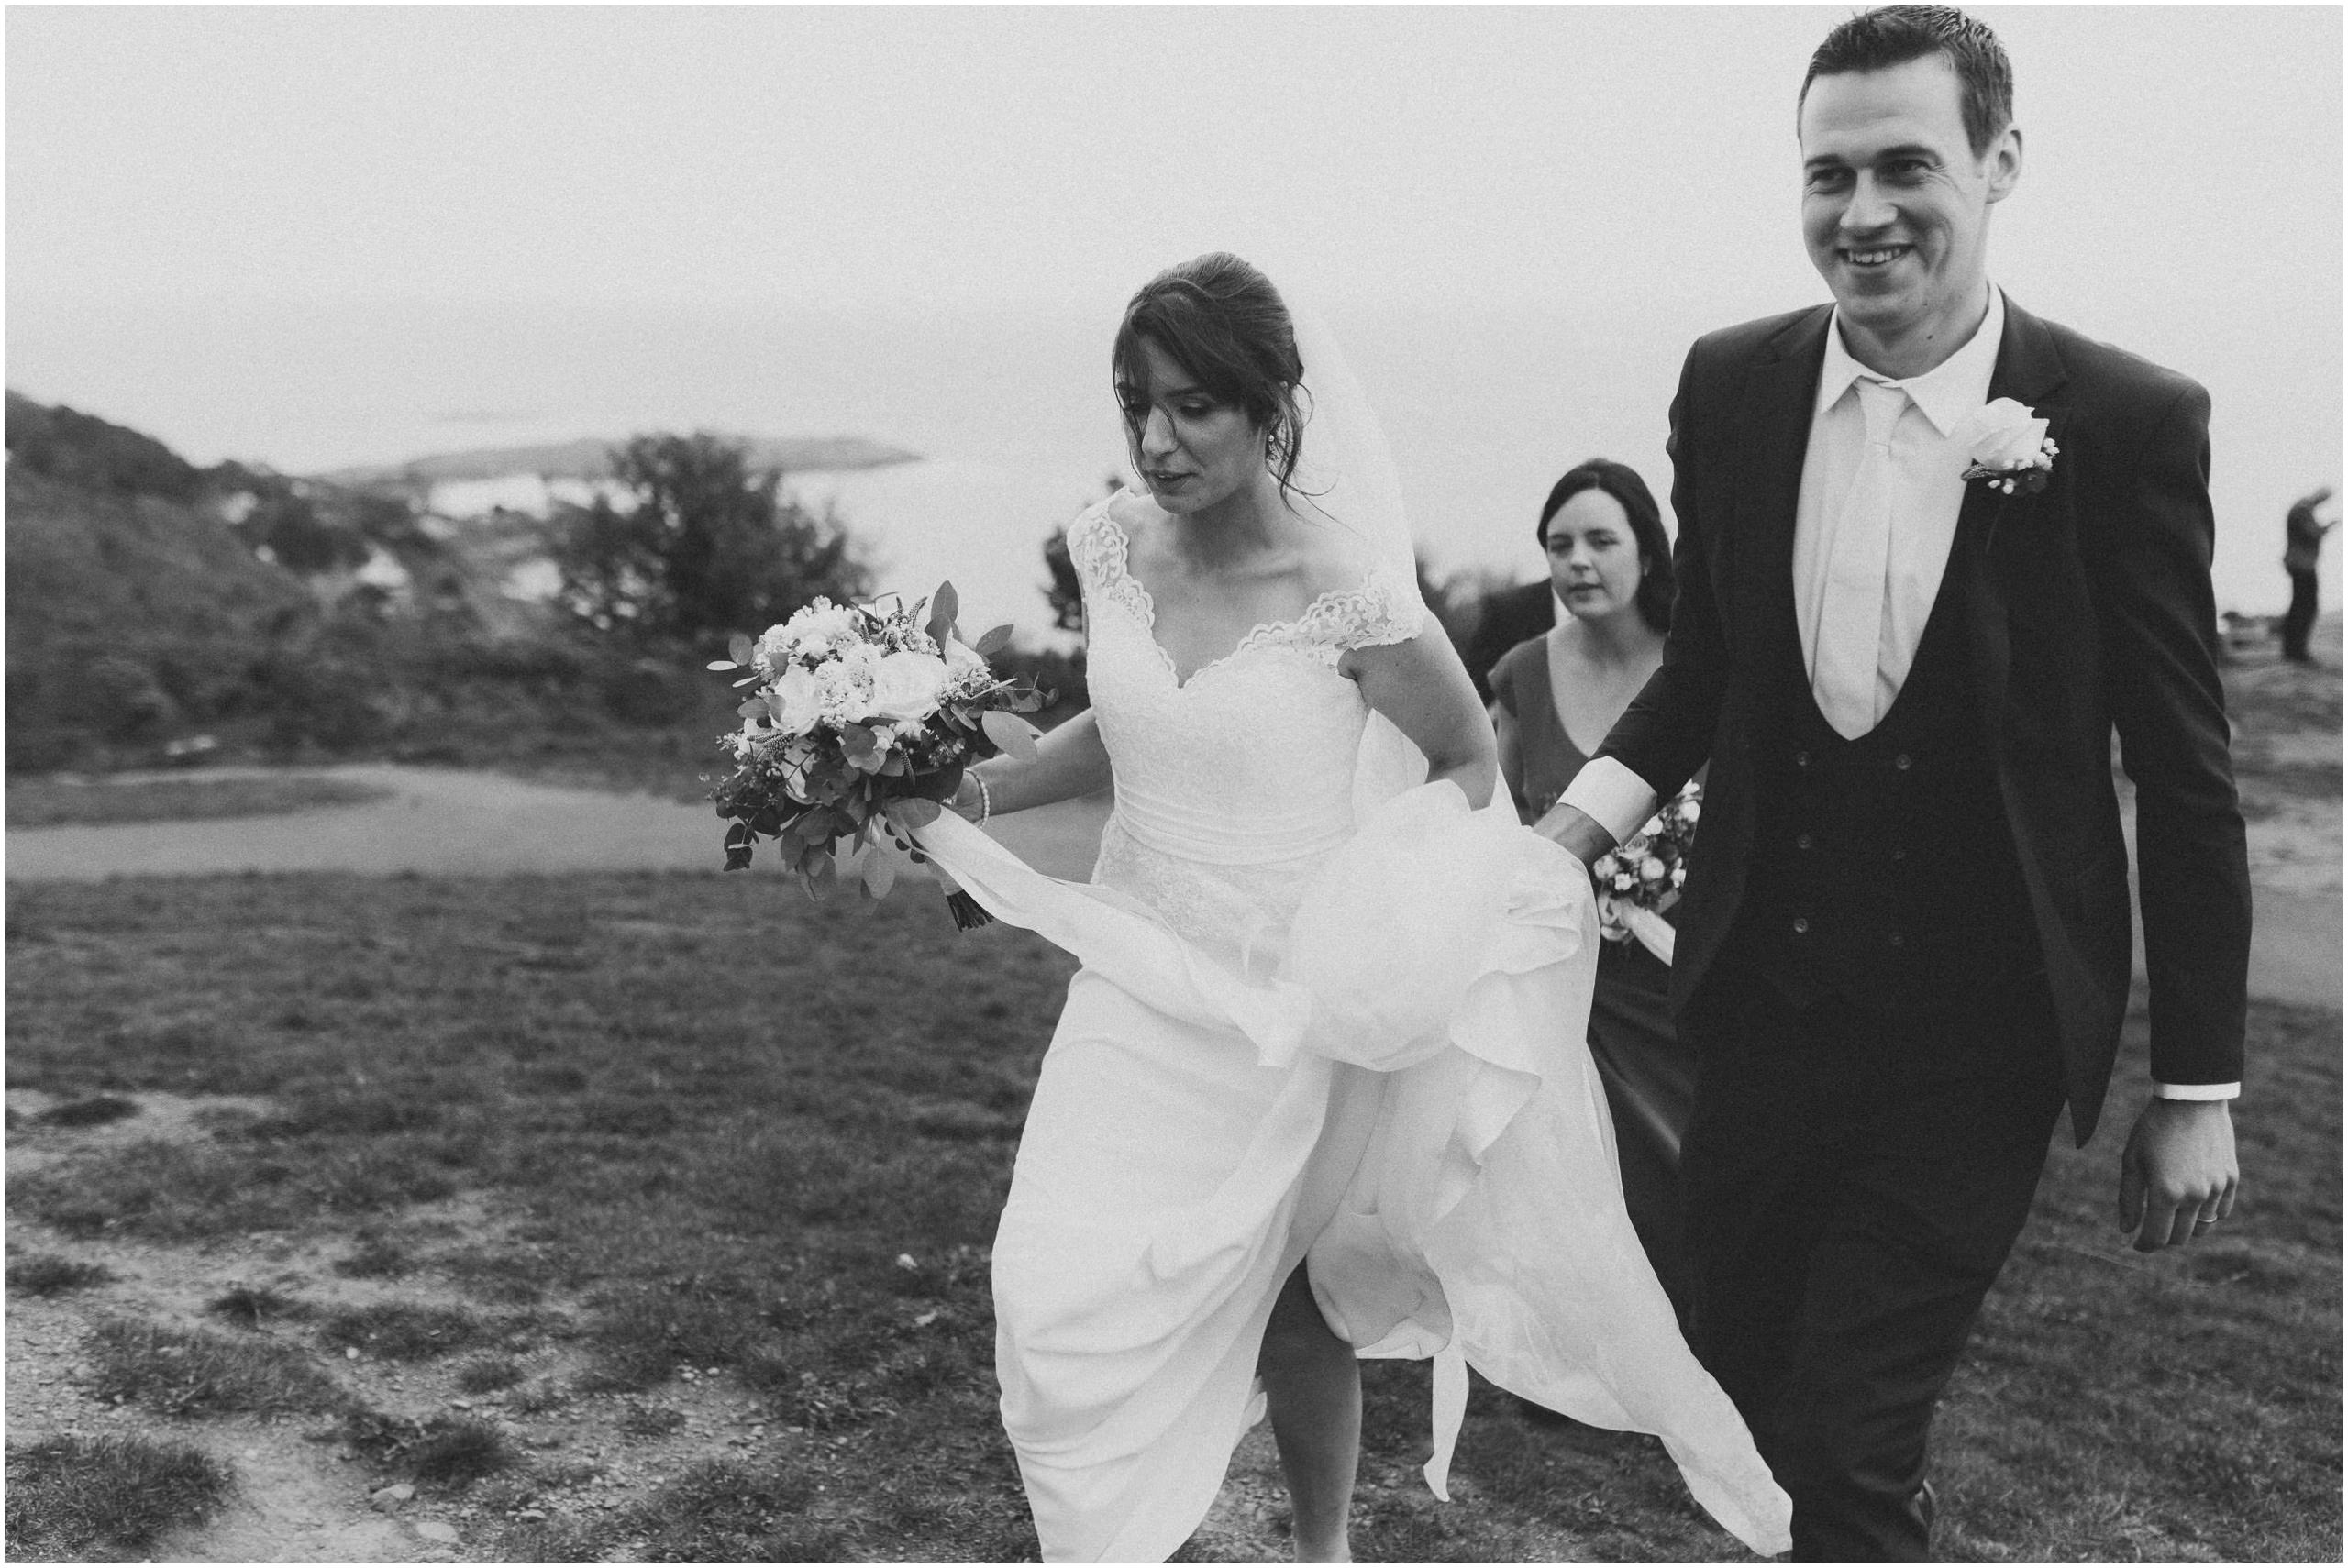 Johnny Corcoran Photography Killiney hill Royal Marine 00105 - Fun and Relaxed wedding and elopement photography in Ireland, perfect for adventurous and outdoorsy couples